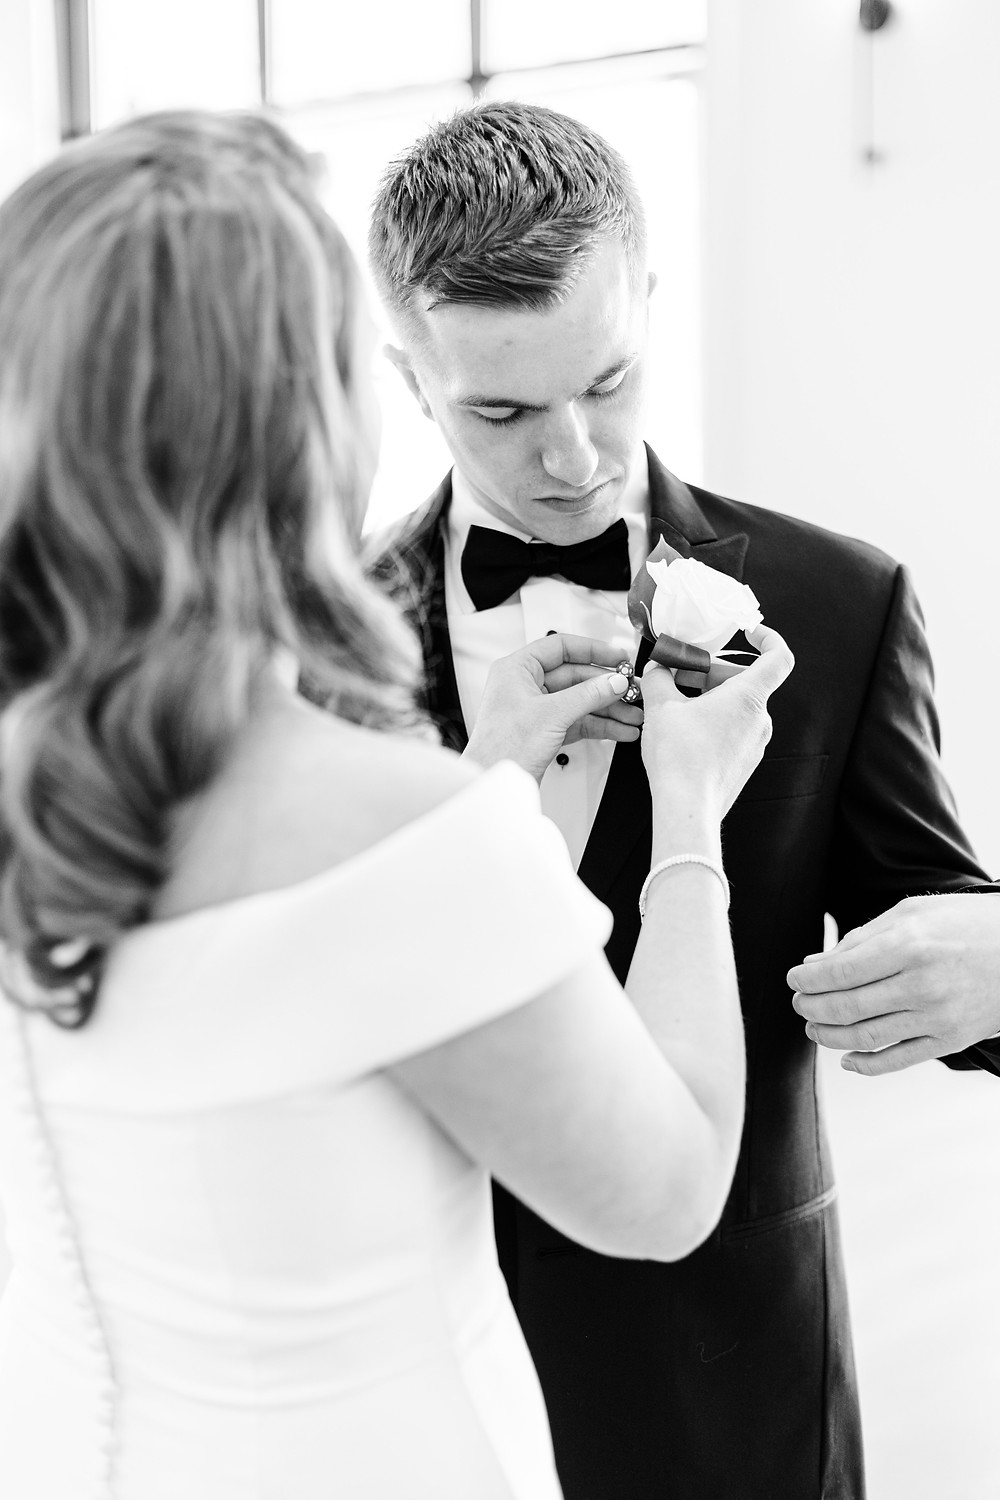 Josh and Andrea wedding photography husband and wife photographer team michigan venue Bay Pointe Woods shelbyville winter wedding bride and groom getting ready first look